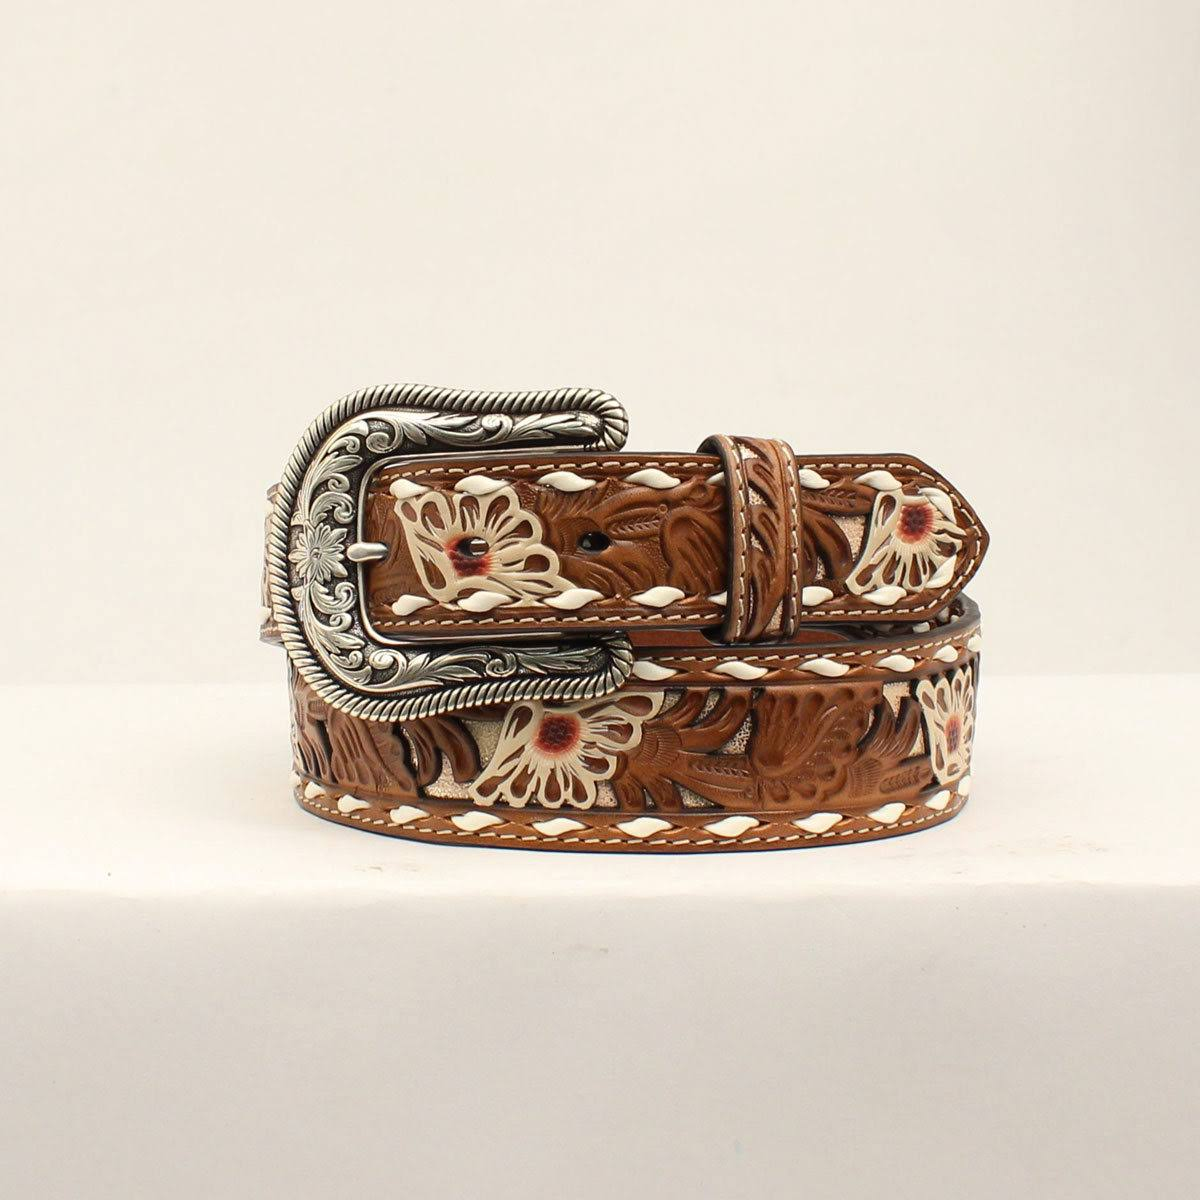 Nocona N320001208-M 1.50 in. Painted Flowers Embossing Pierced Ladies Belt Tan - Medium